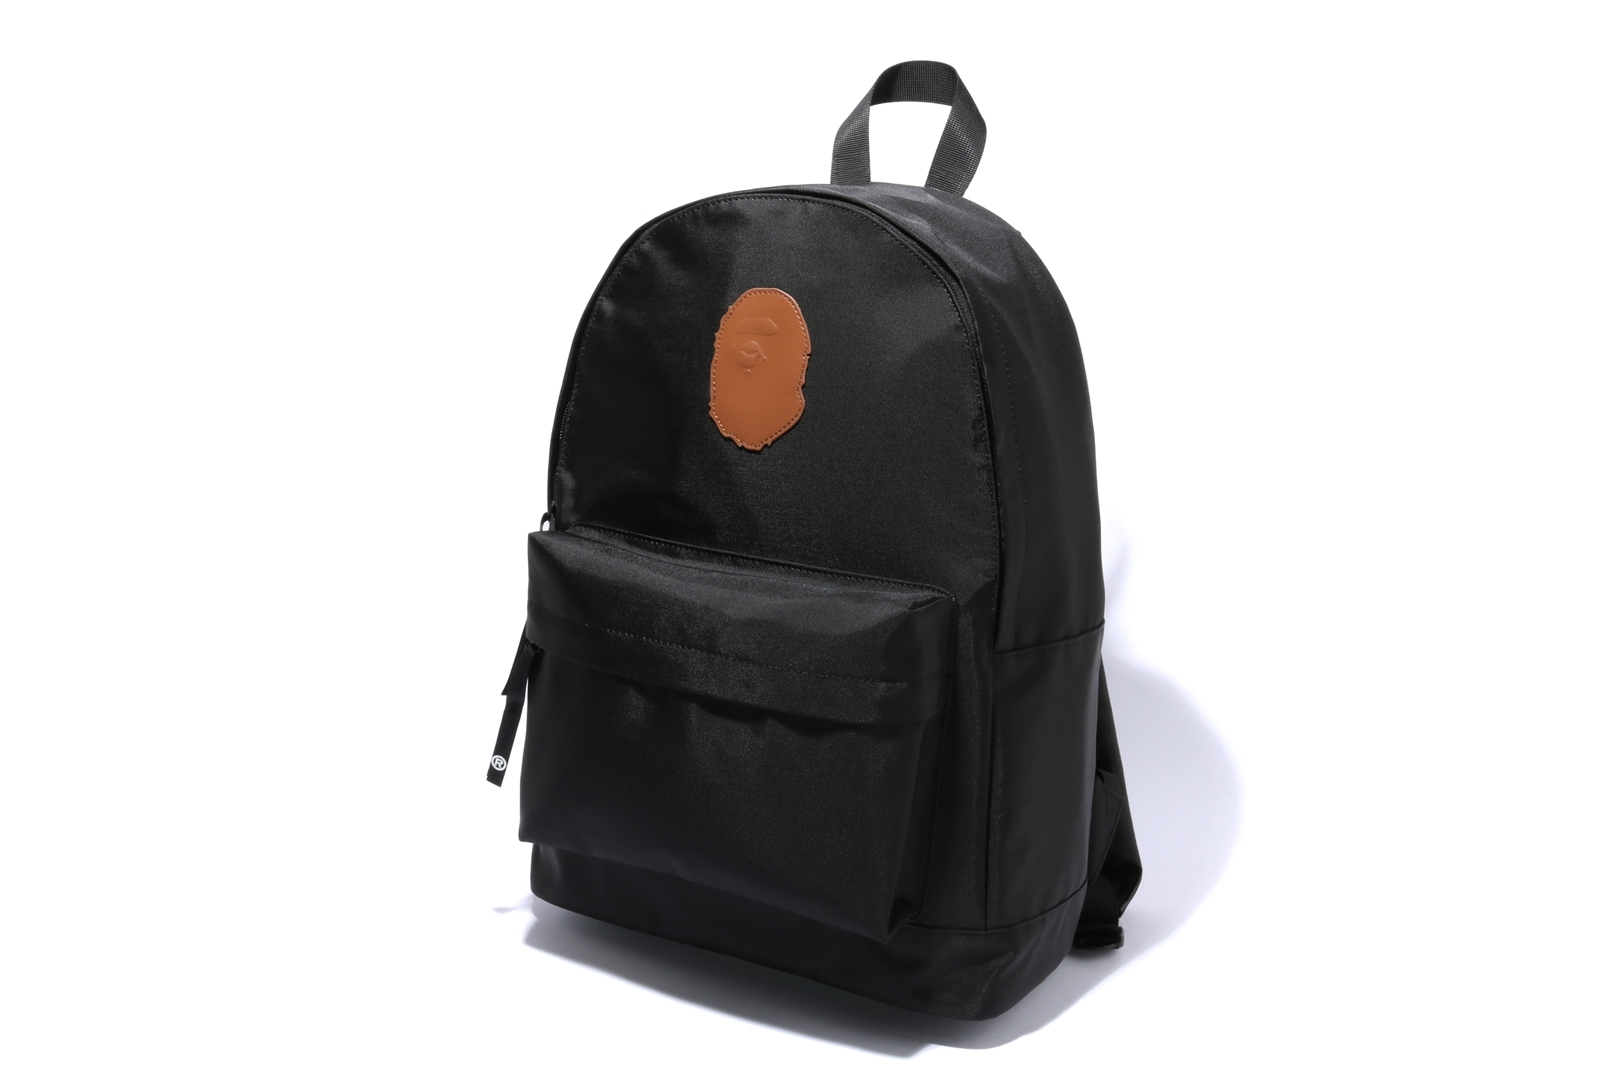 APE HEAD DAY PACK_a0174495_16023516.jpg